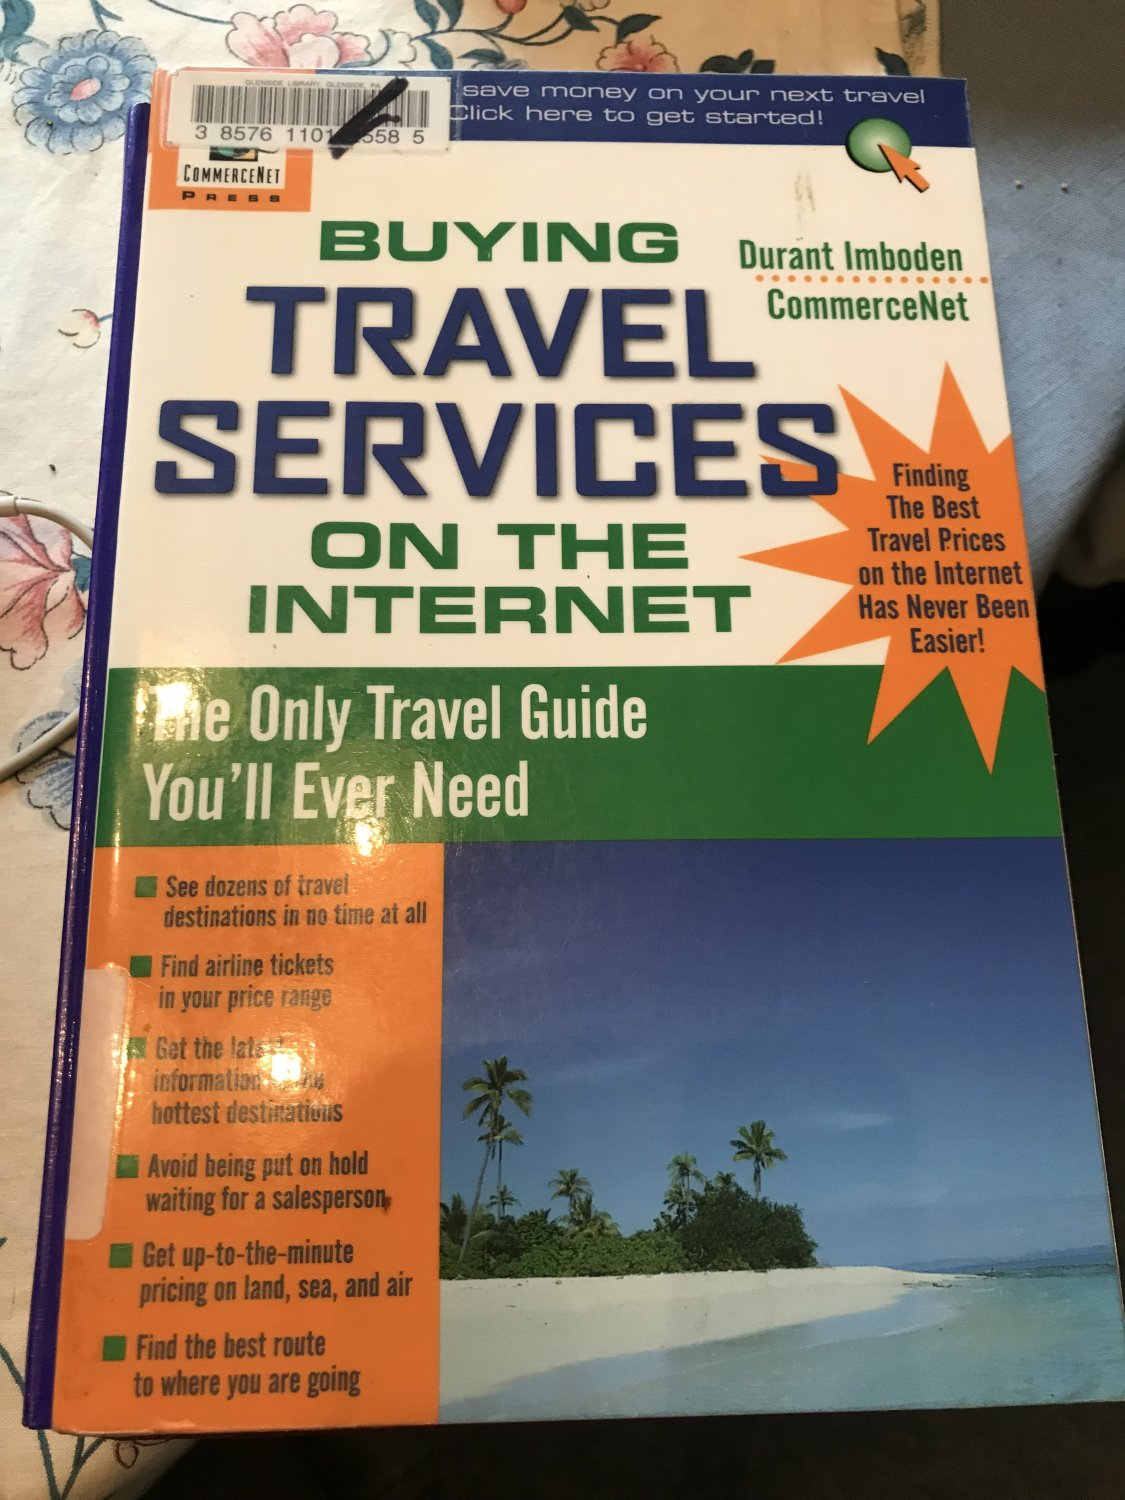 Buying Travel Services on the Internet (CommerceNet) Paperback � June 25, 1999 by Durant Imboden